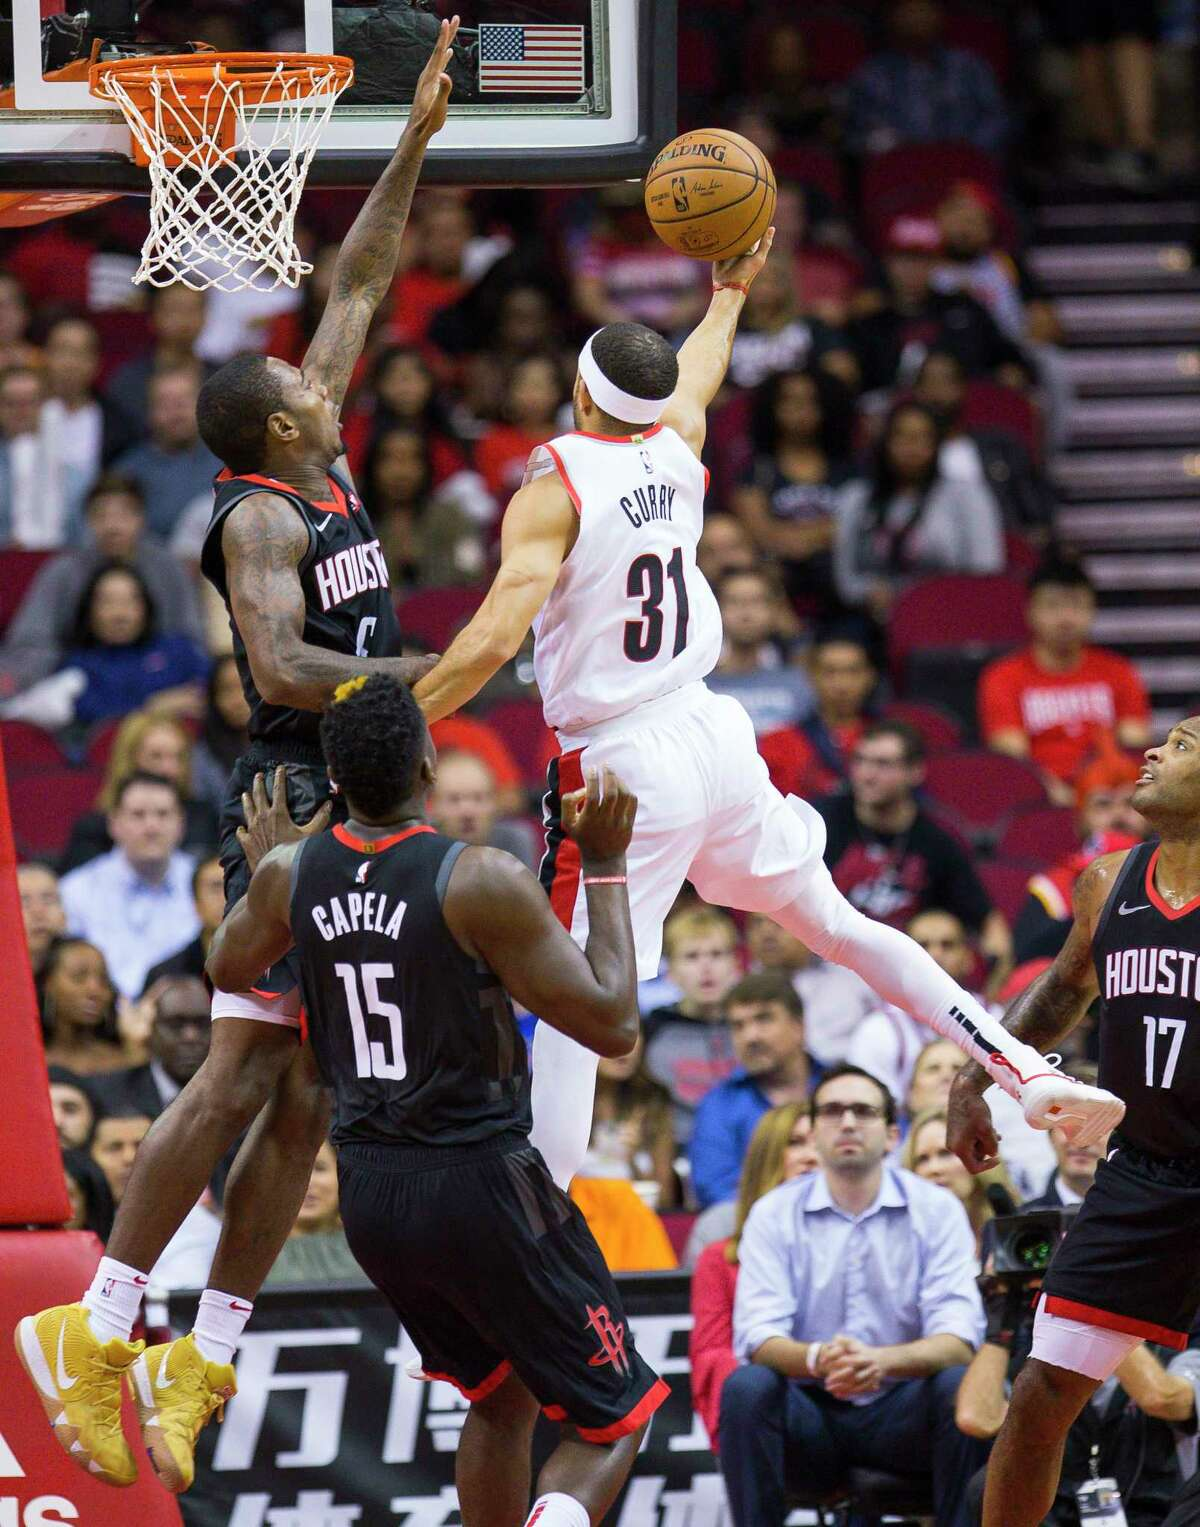 Portland Trail Blazers guard Seth Curry (31) tries to shoot over Houston Rockets forward Gary Clark (6) during the first half of an NBA game, Tuesday, Oct. 30, 2018, at Toyota Center in Houston.